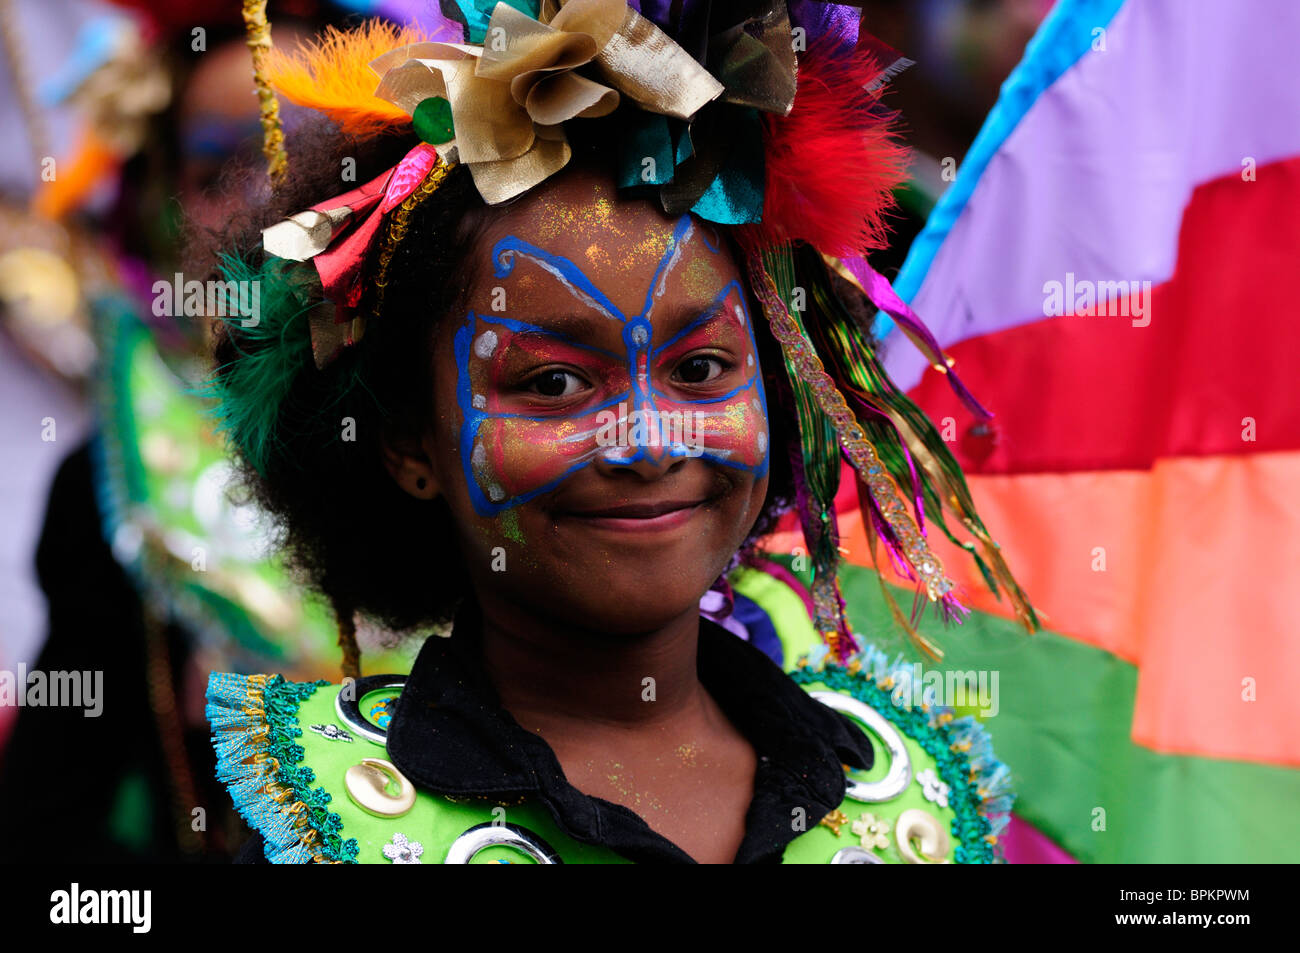 Portrait of a Girl Dancer at the Notting Hill Carnival Childrens Day Parade, London, England, UK - Stock Image